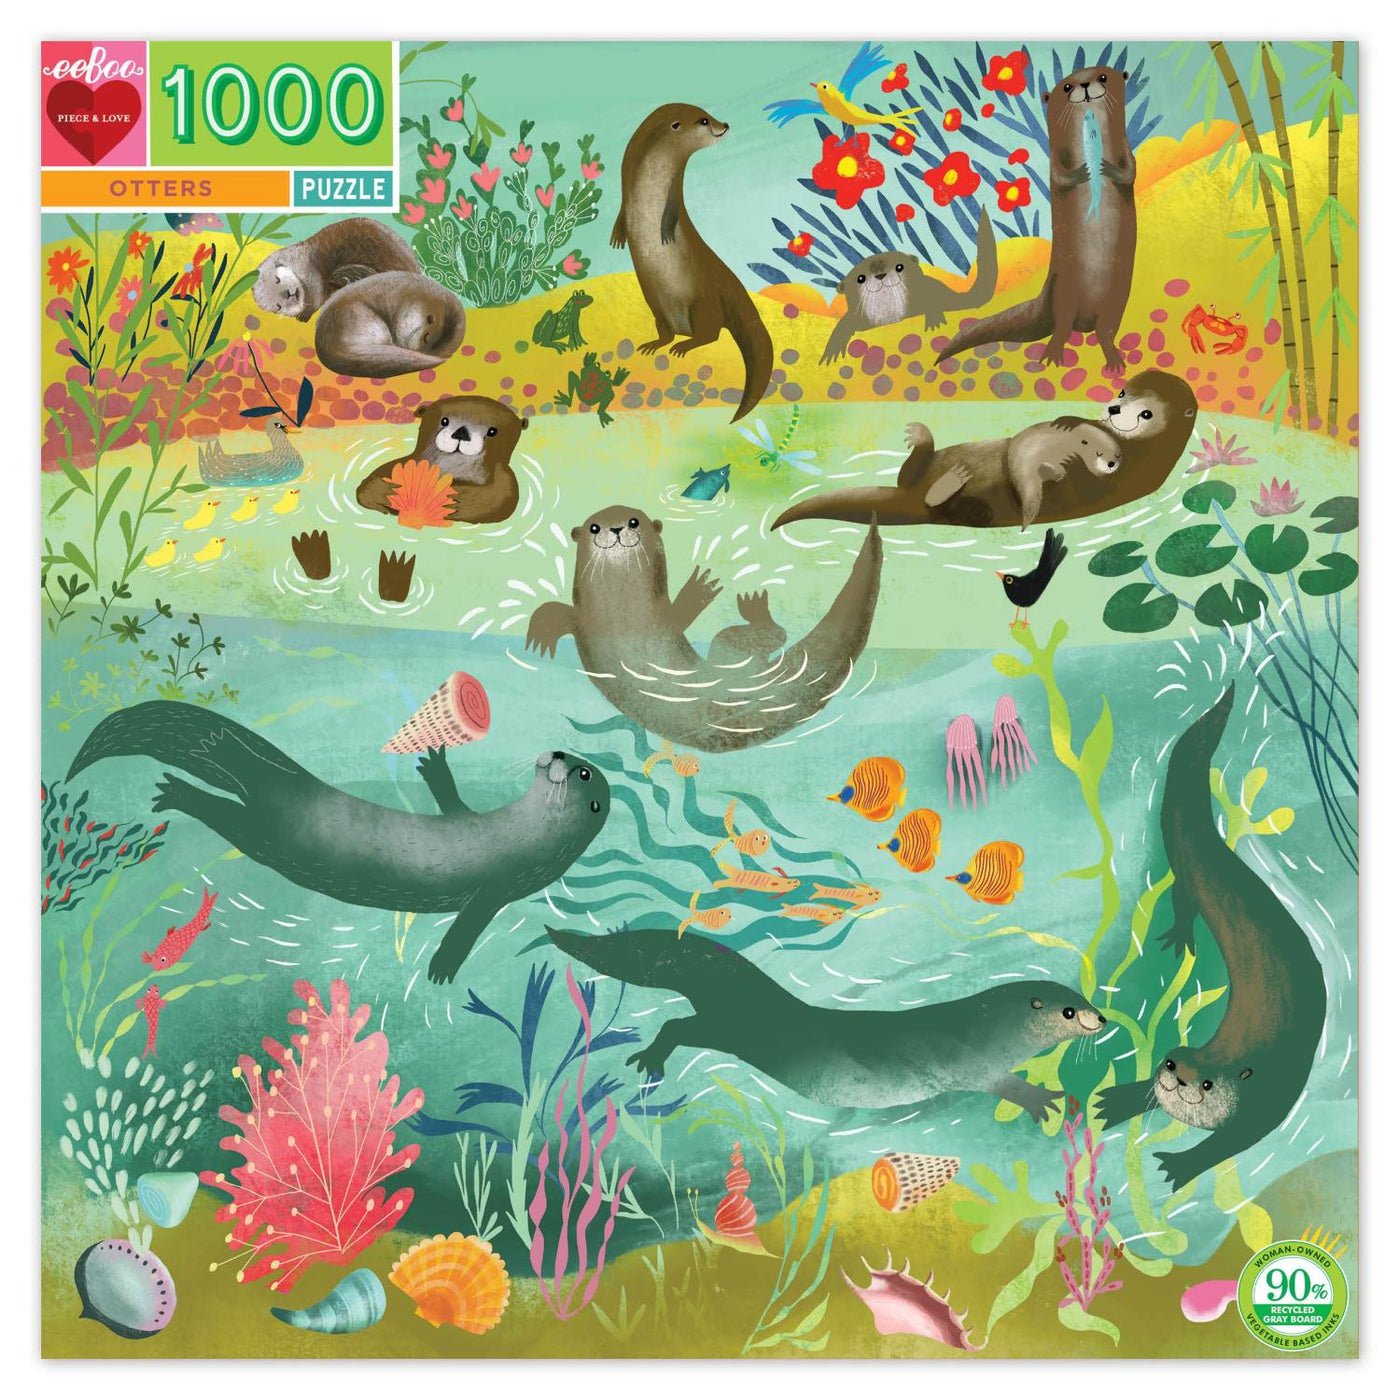 Otters 1000pc Puzzle